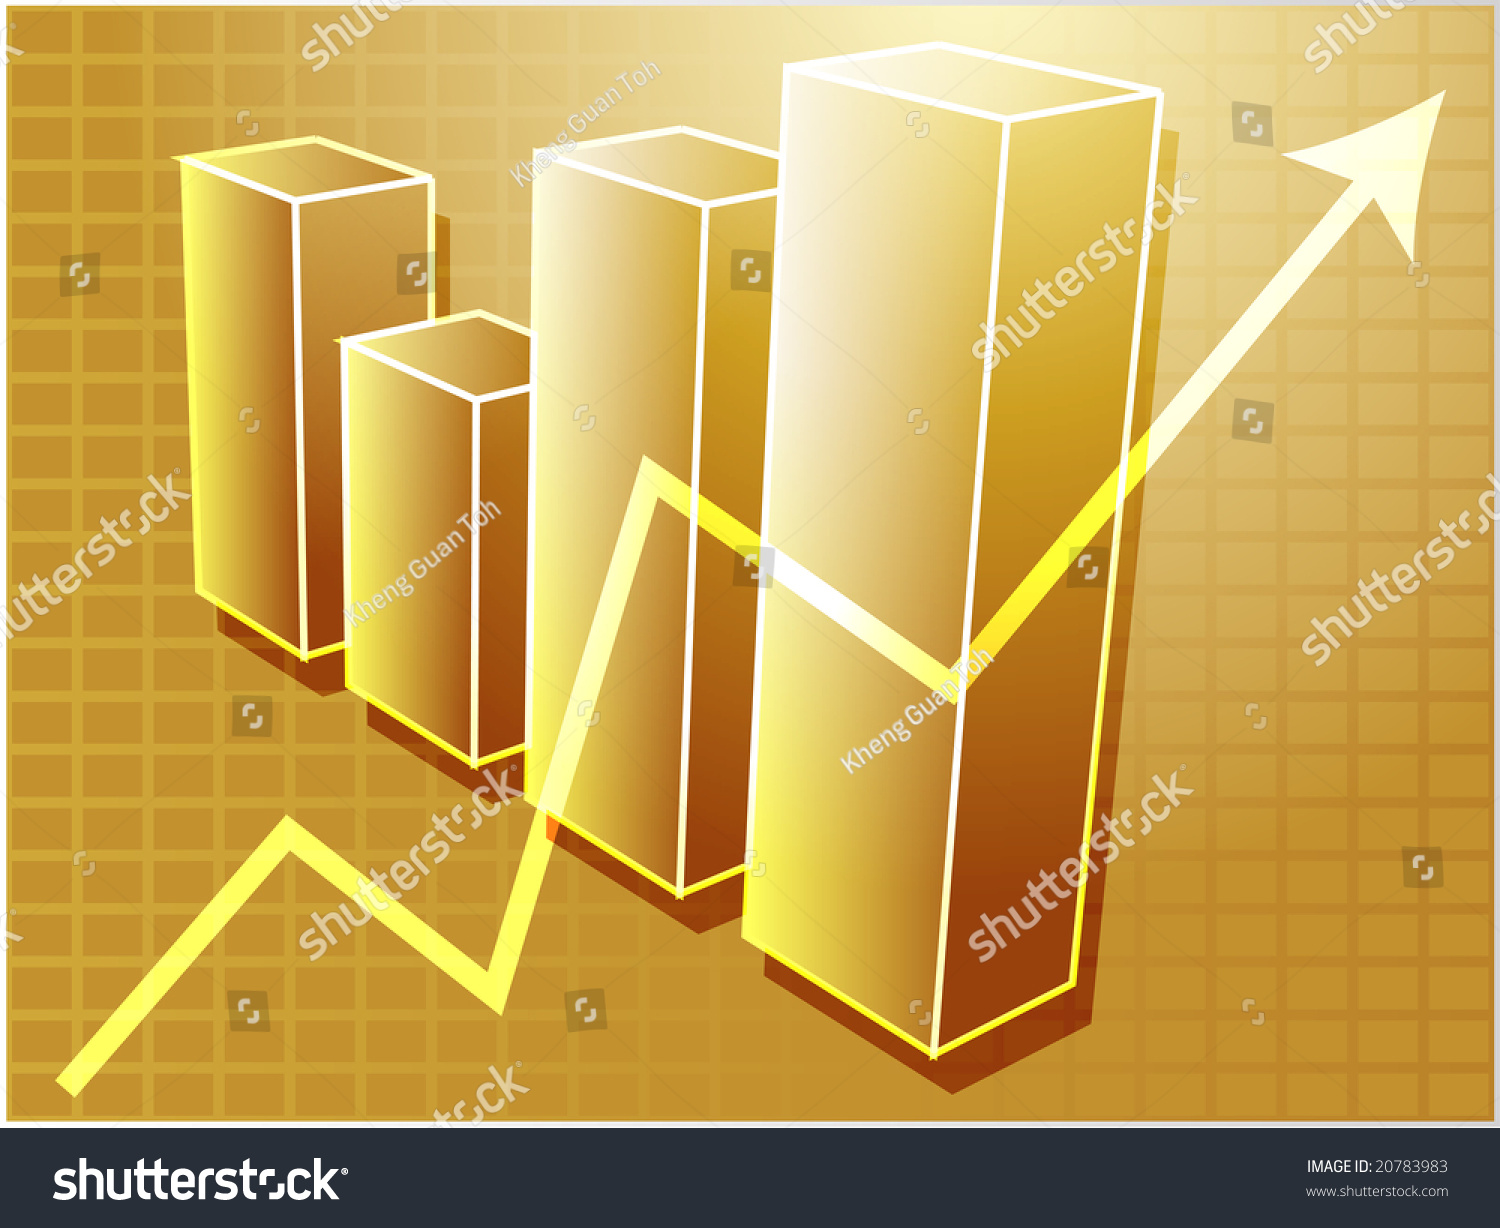 Threed bar chart upwards line graph stock illustration 20783983 three d bar chart and upwards line graph financial diagram illustration over square grid ccuart Choice Image